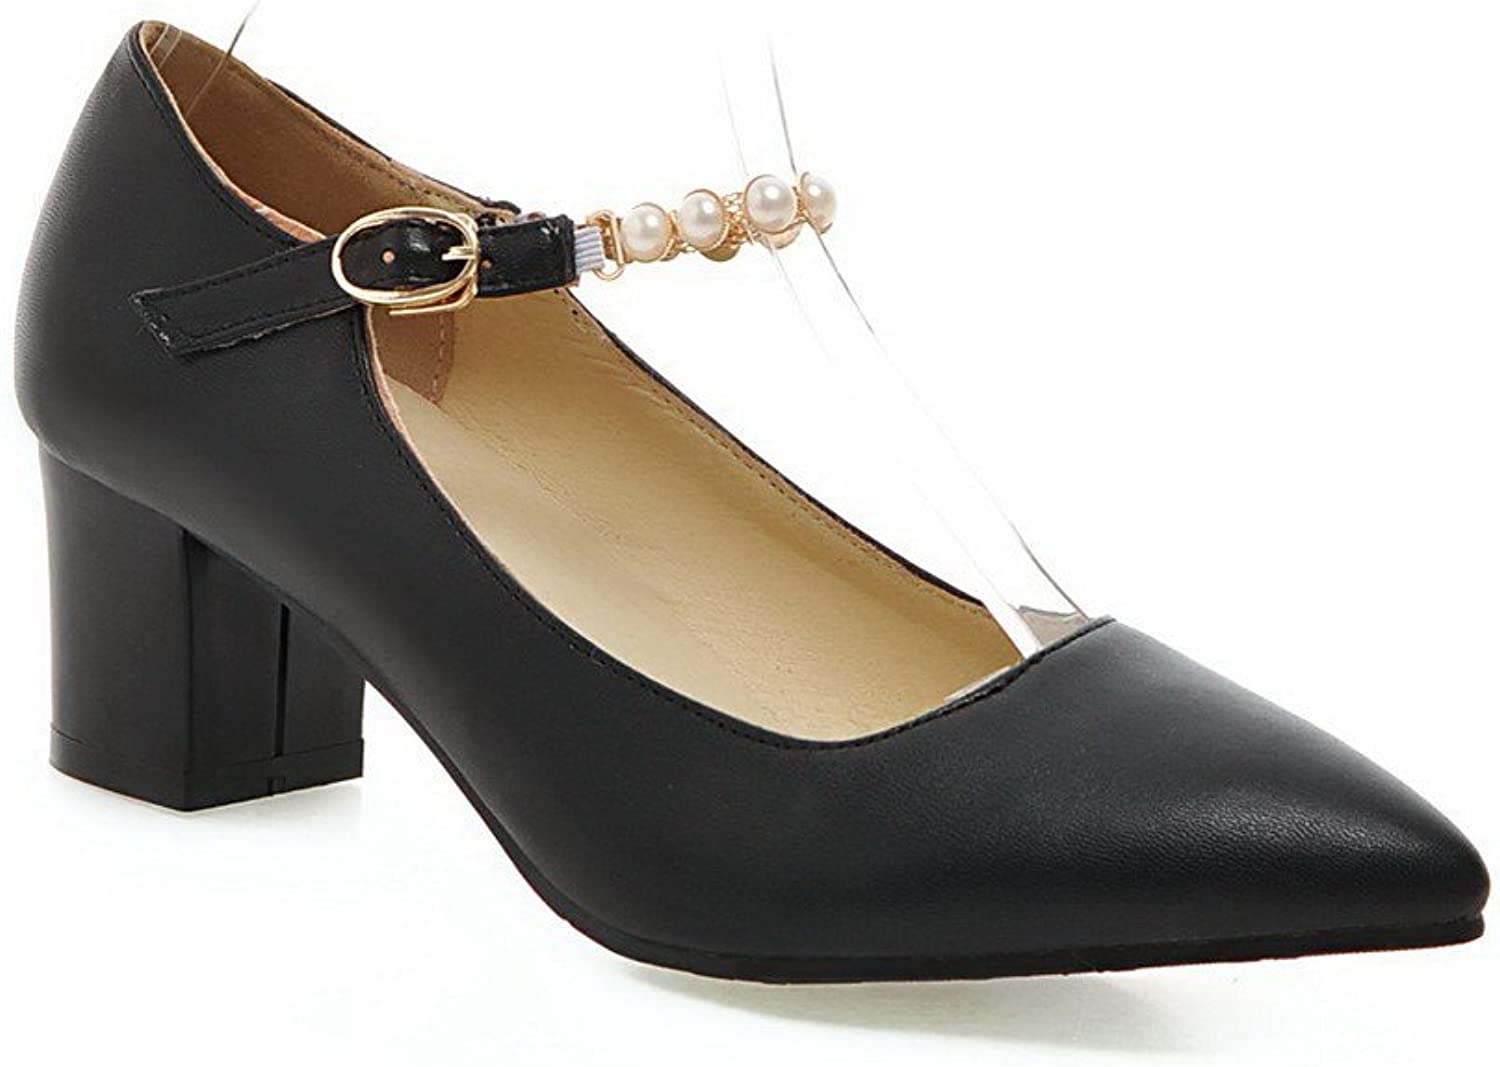 WeenFashion Women's Pu Solid Buckle Pointed Closed Toe Kitten Heels Pumps-shoes